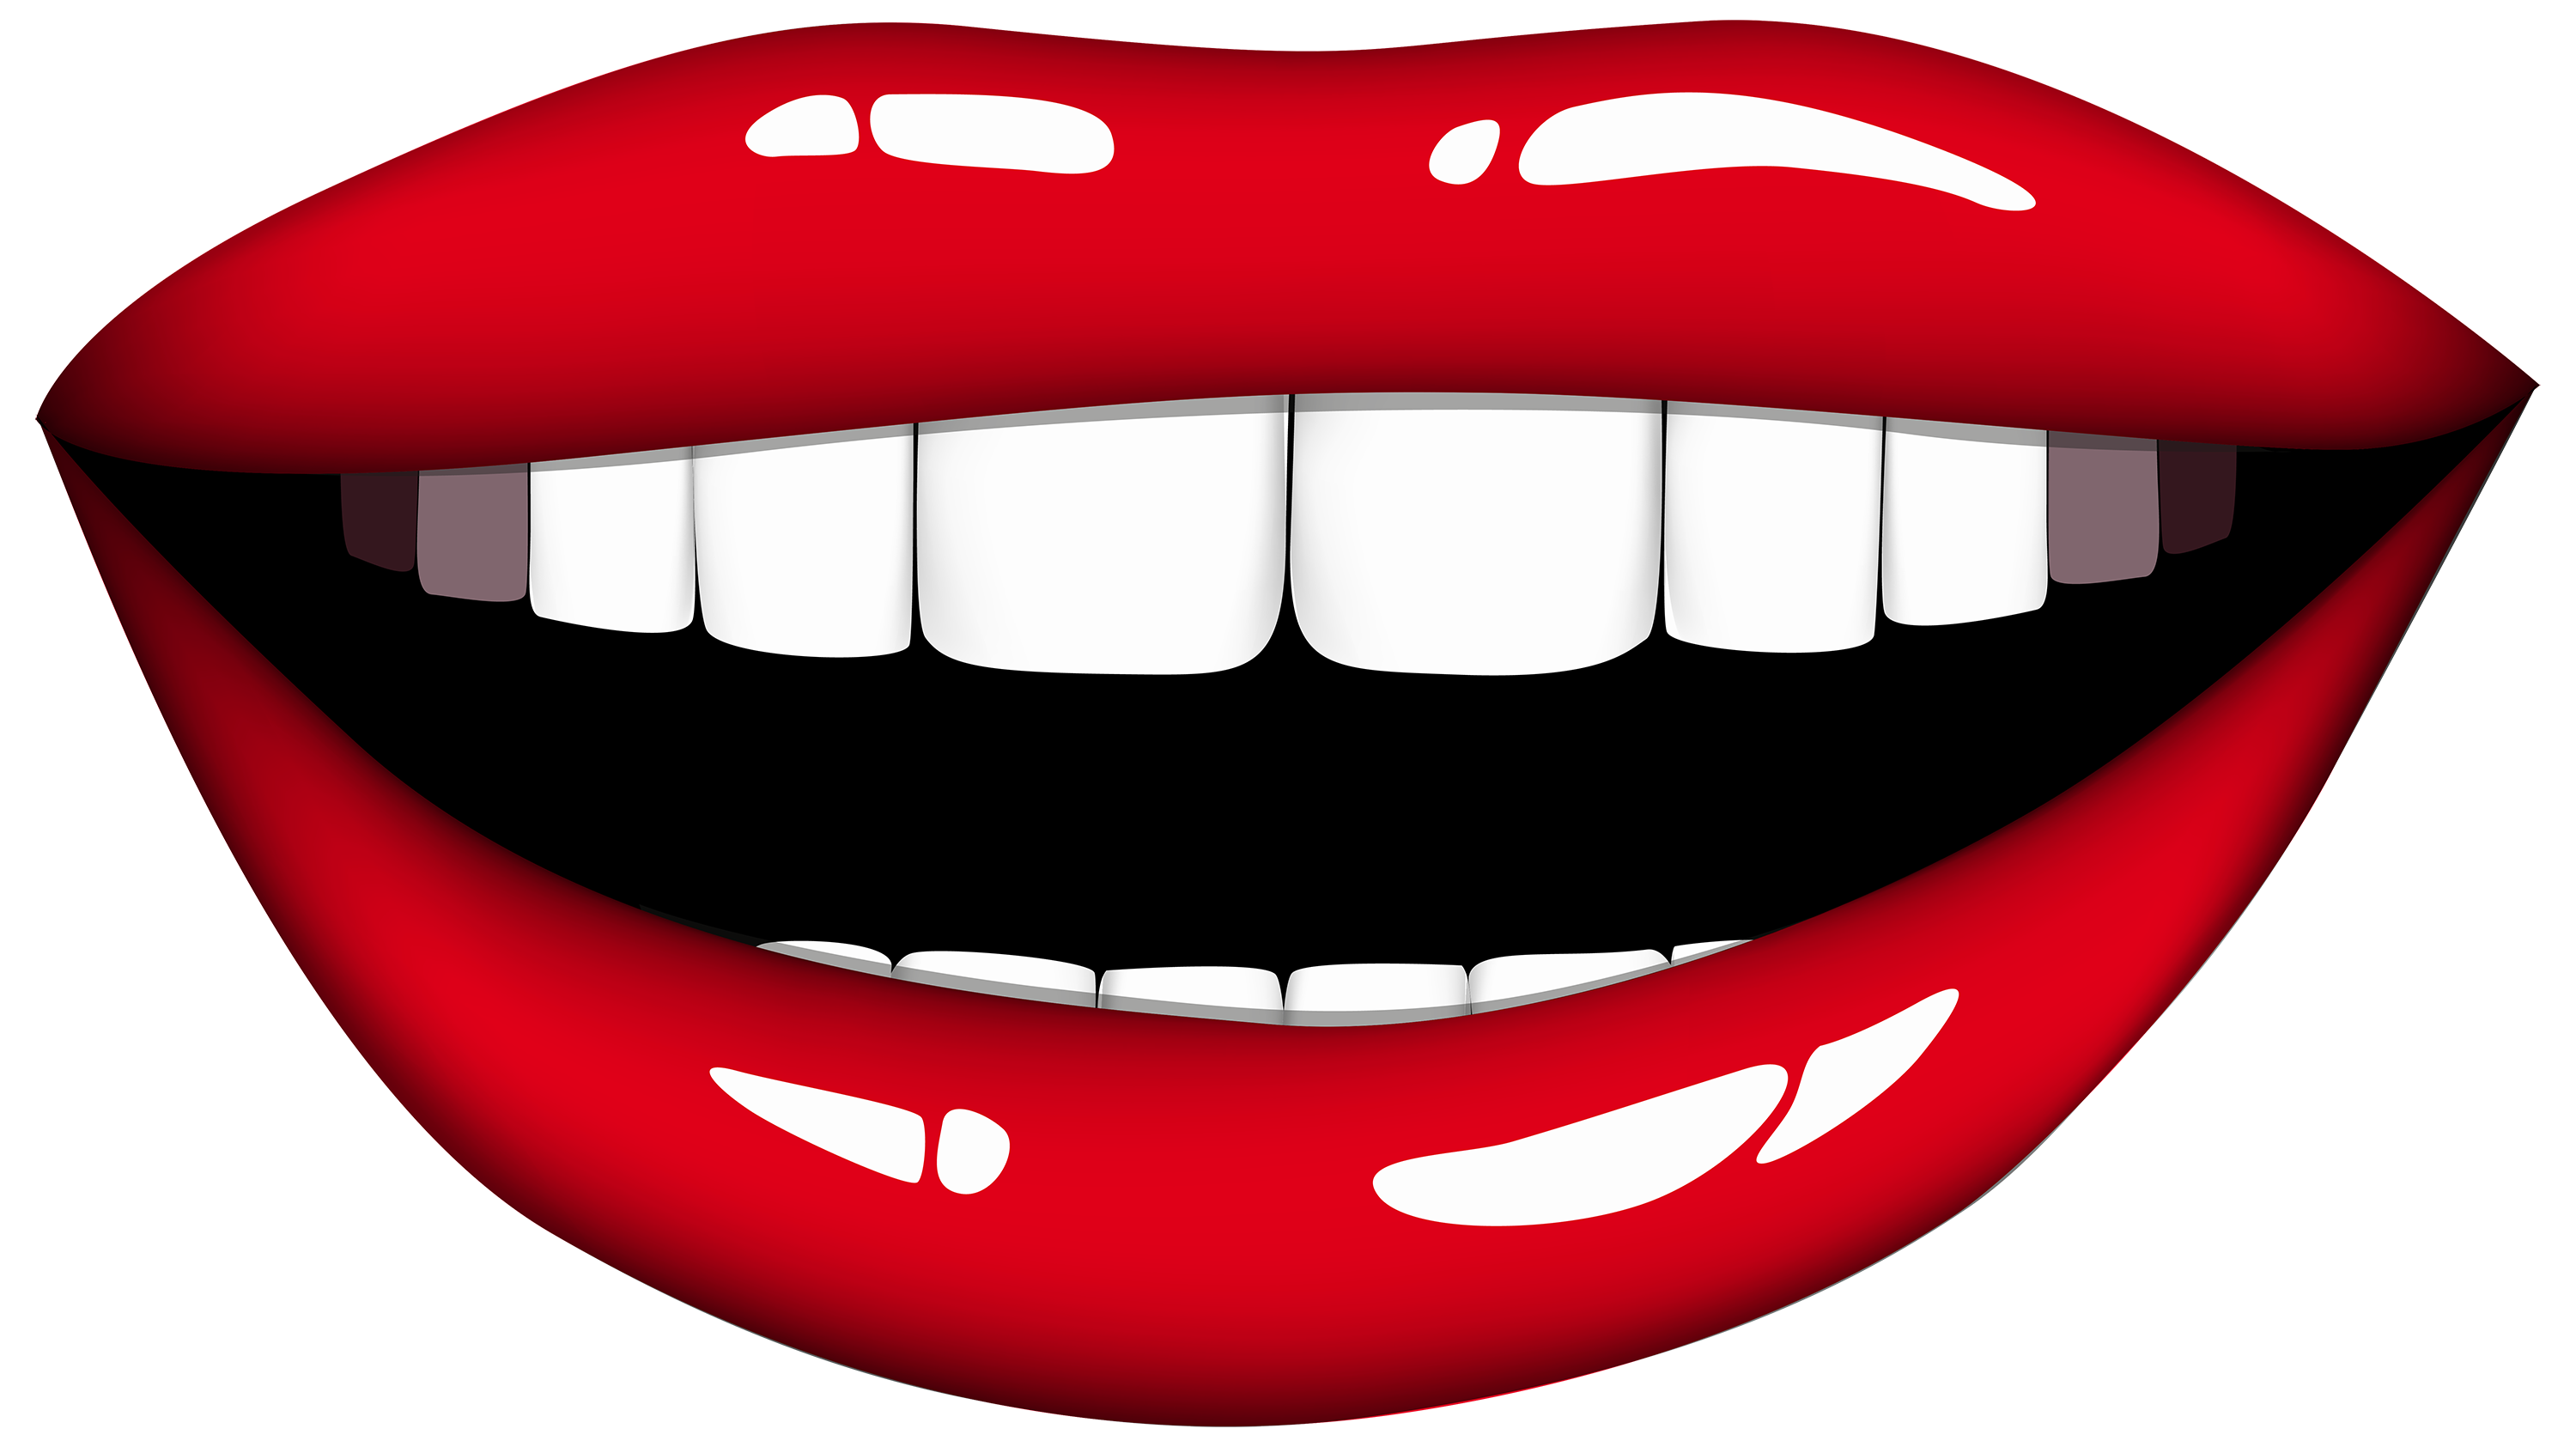 Smile Lips Clipart Free Clipart Images 6 - Smile Lips, Transparent background PNG HD thumbnail